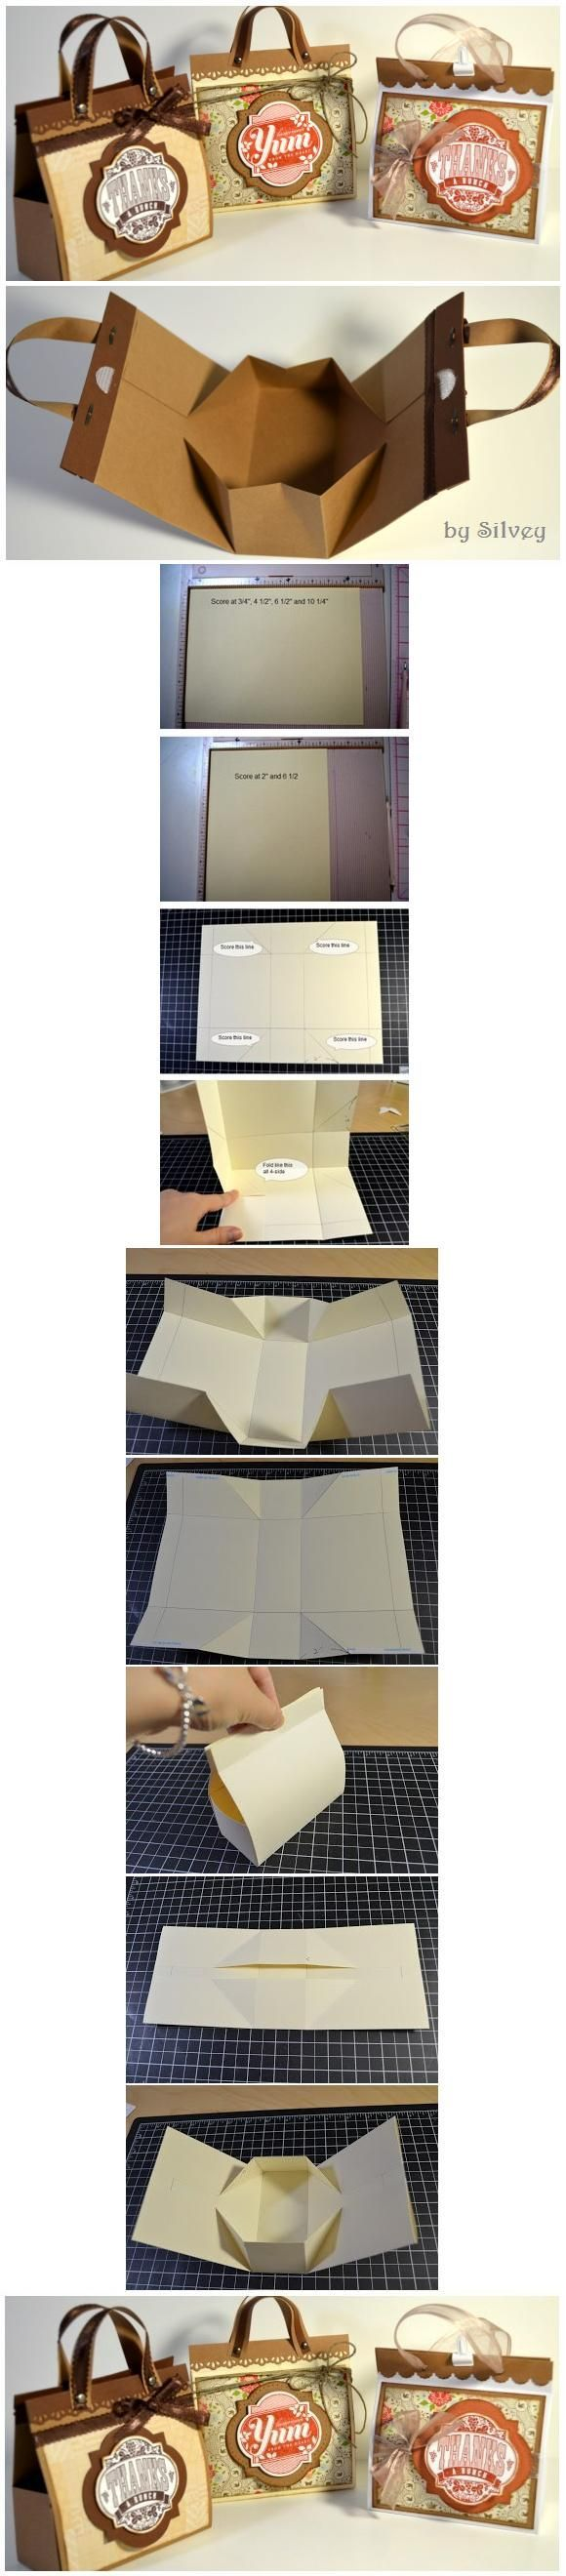 DIY Mini Paper Handbag - these would be great for your Out of Town Guests Bags. - brown leather bags ladies, online shopping bags, purse bag *sponsored https://www.pinterest.com/bags_bag/ https://www.pinterest.com/explore/bags/ https://www.pinterest.com/bags_bag/drawstring-bag/ http://www.ebags.com/